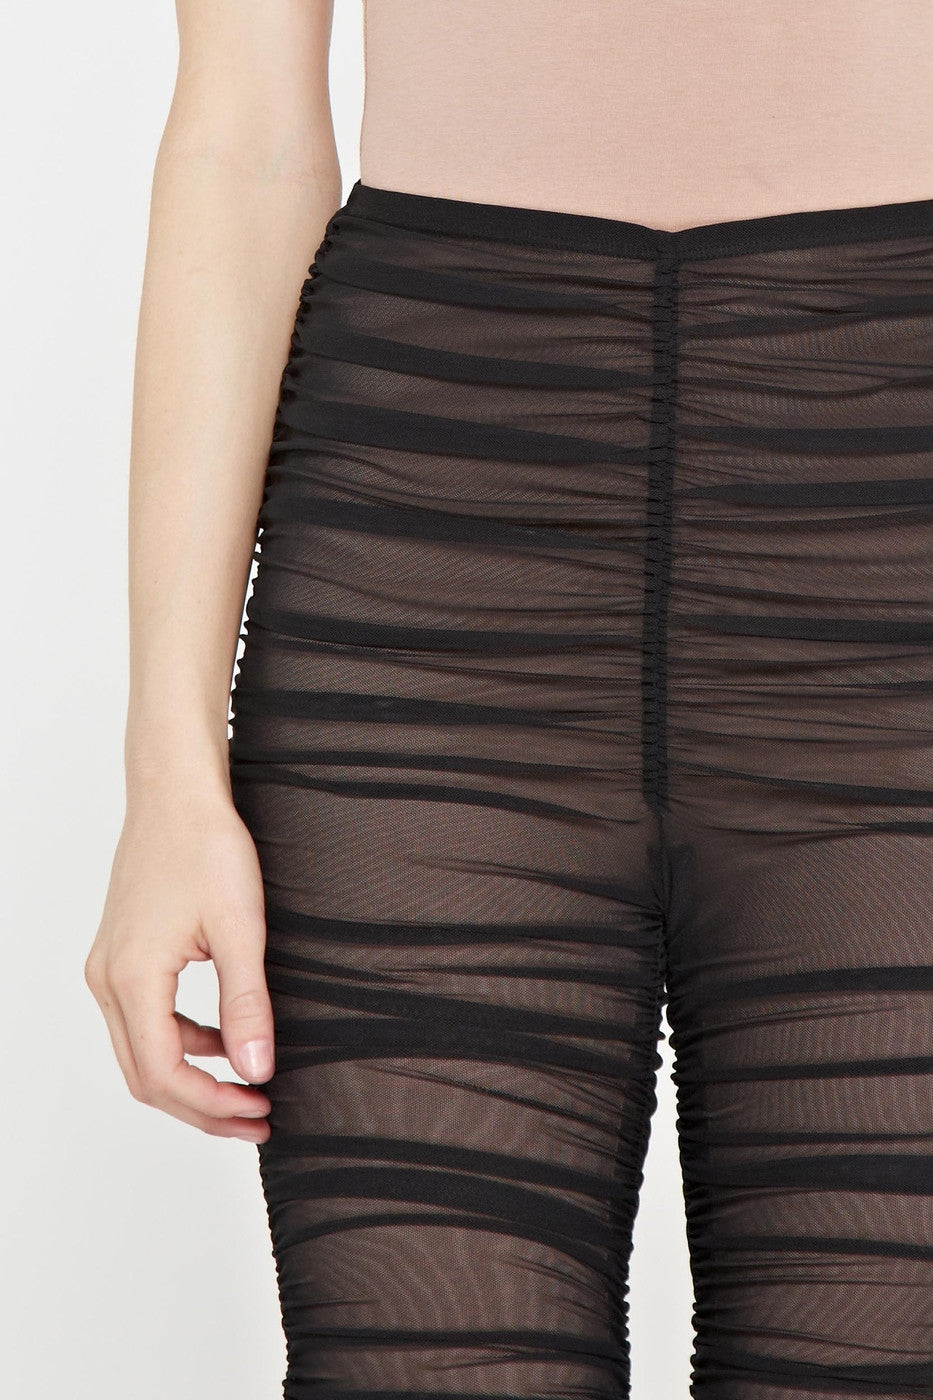 d8e0f45e0701 Buy RESTOCKED! 'After Hours' Ruched Mesh Leggings - Black at Style ...